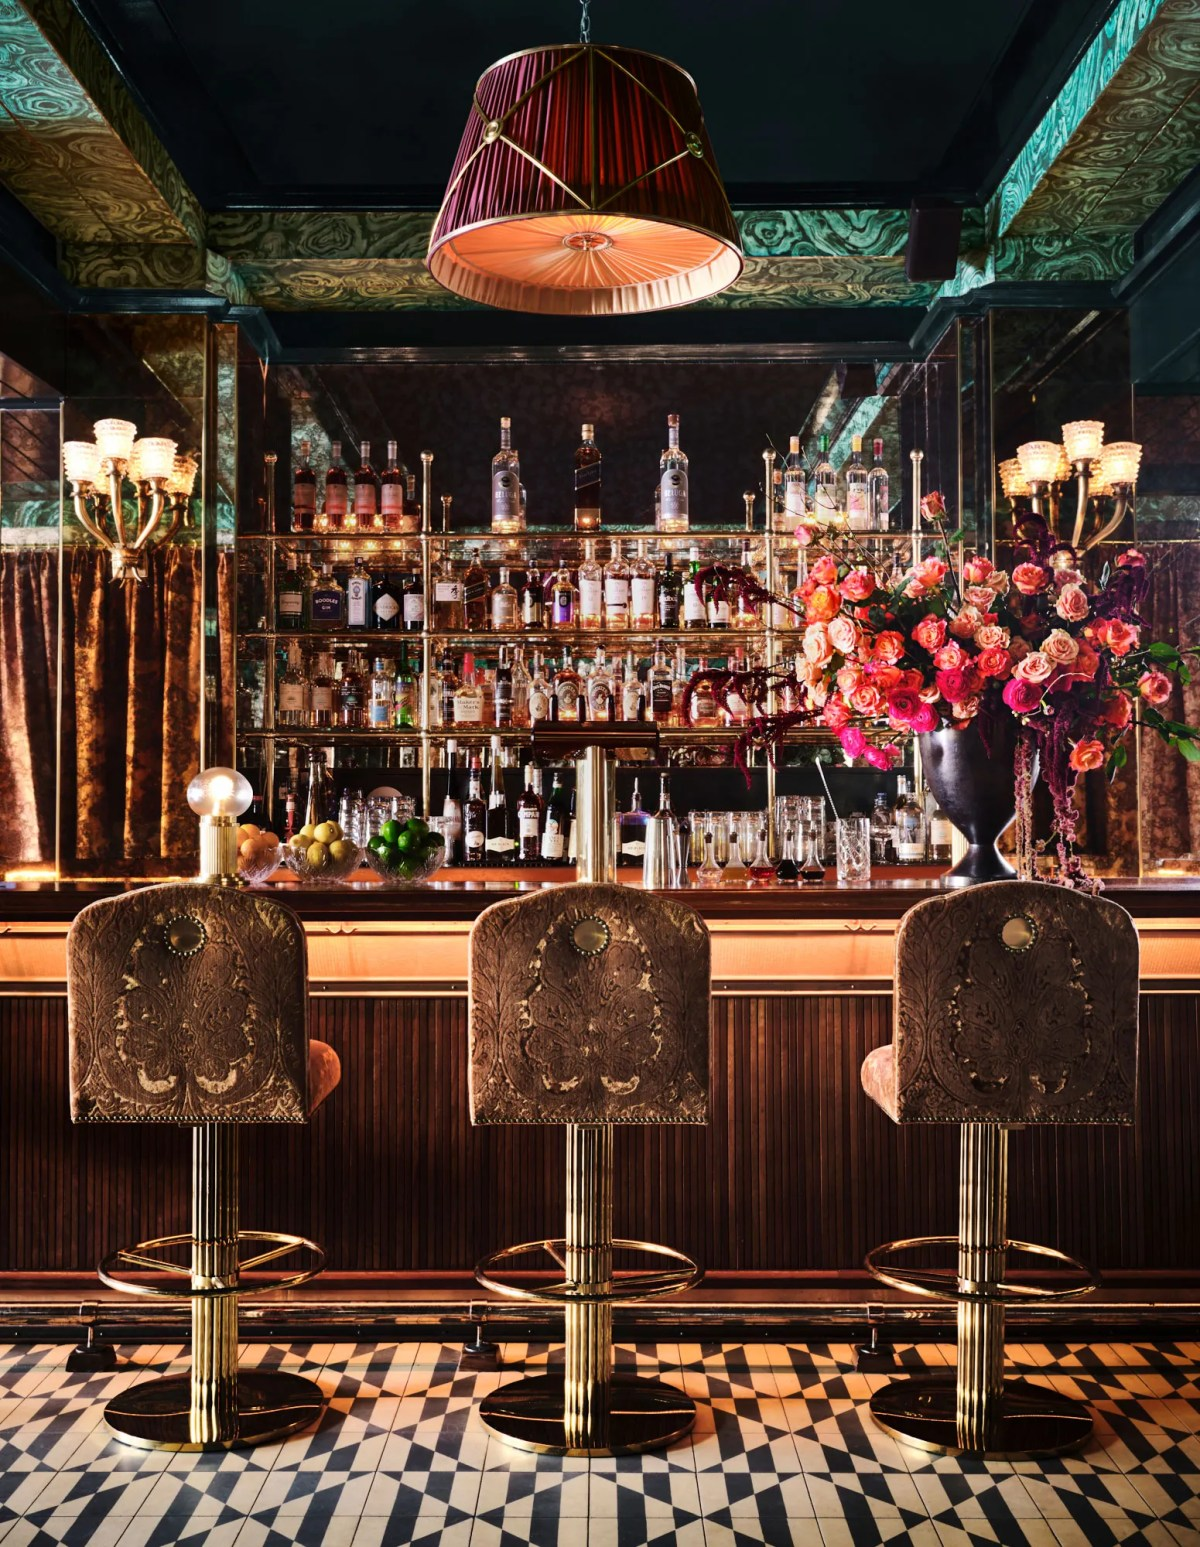 The bar at the new Carbone outpost in Miami Beach designed by AD100 star Ken Fulk.